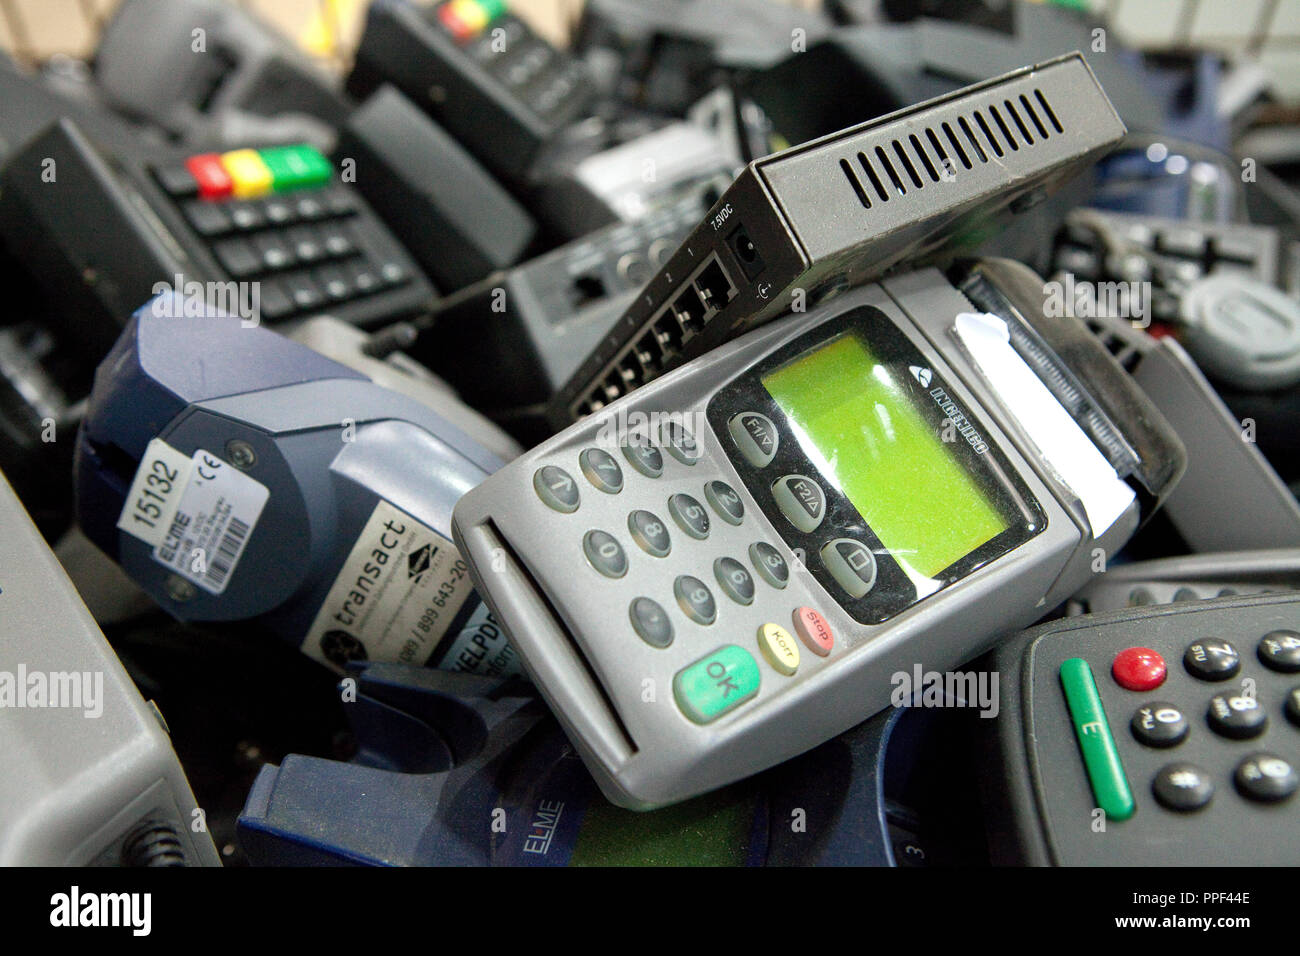 EC card readers in the recycling business of 'Weisser Raben' in Dornach, where are employed severely disabled and long-term jobless people. - Stock Image